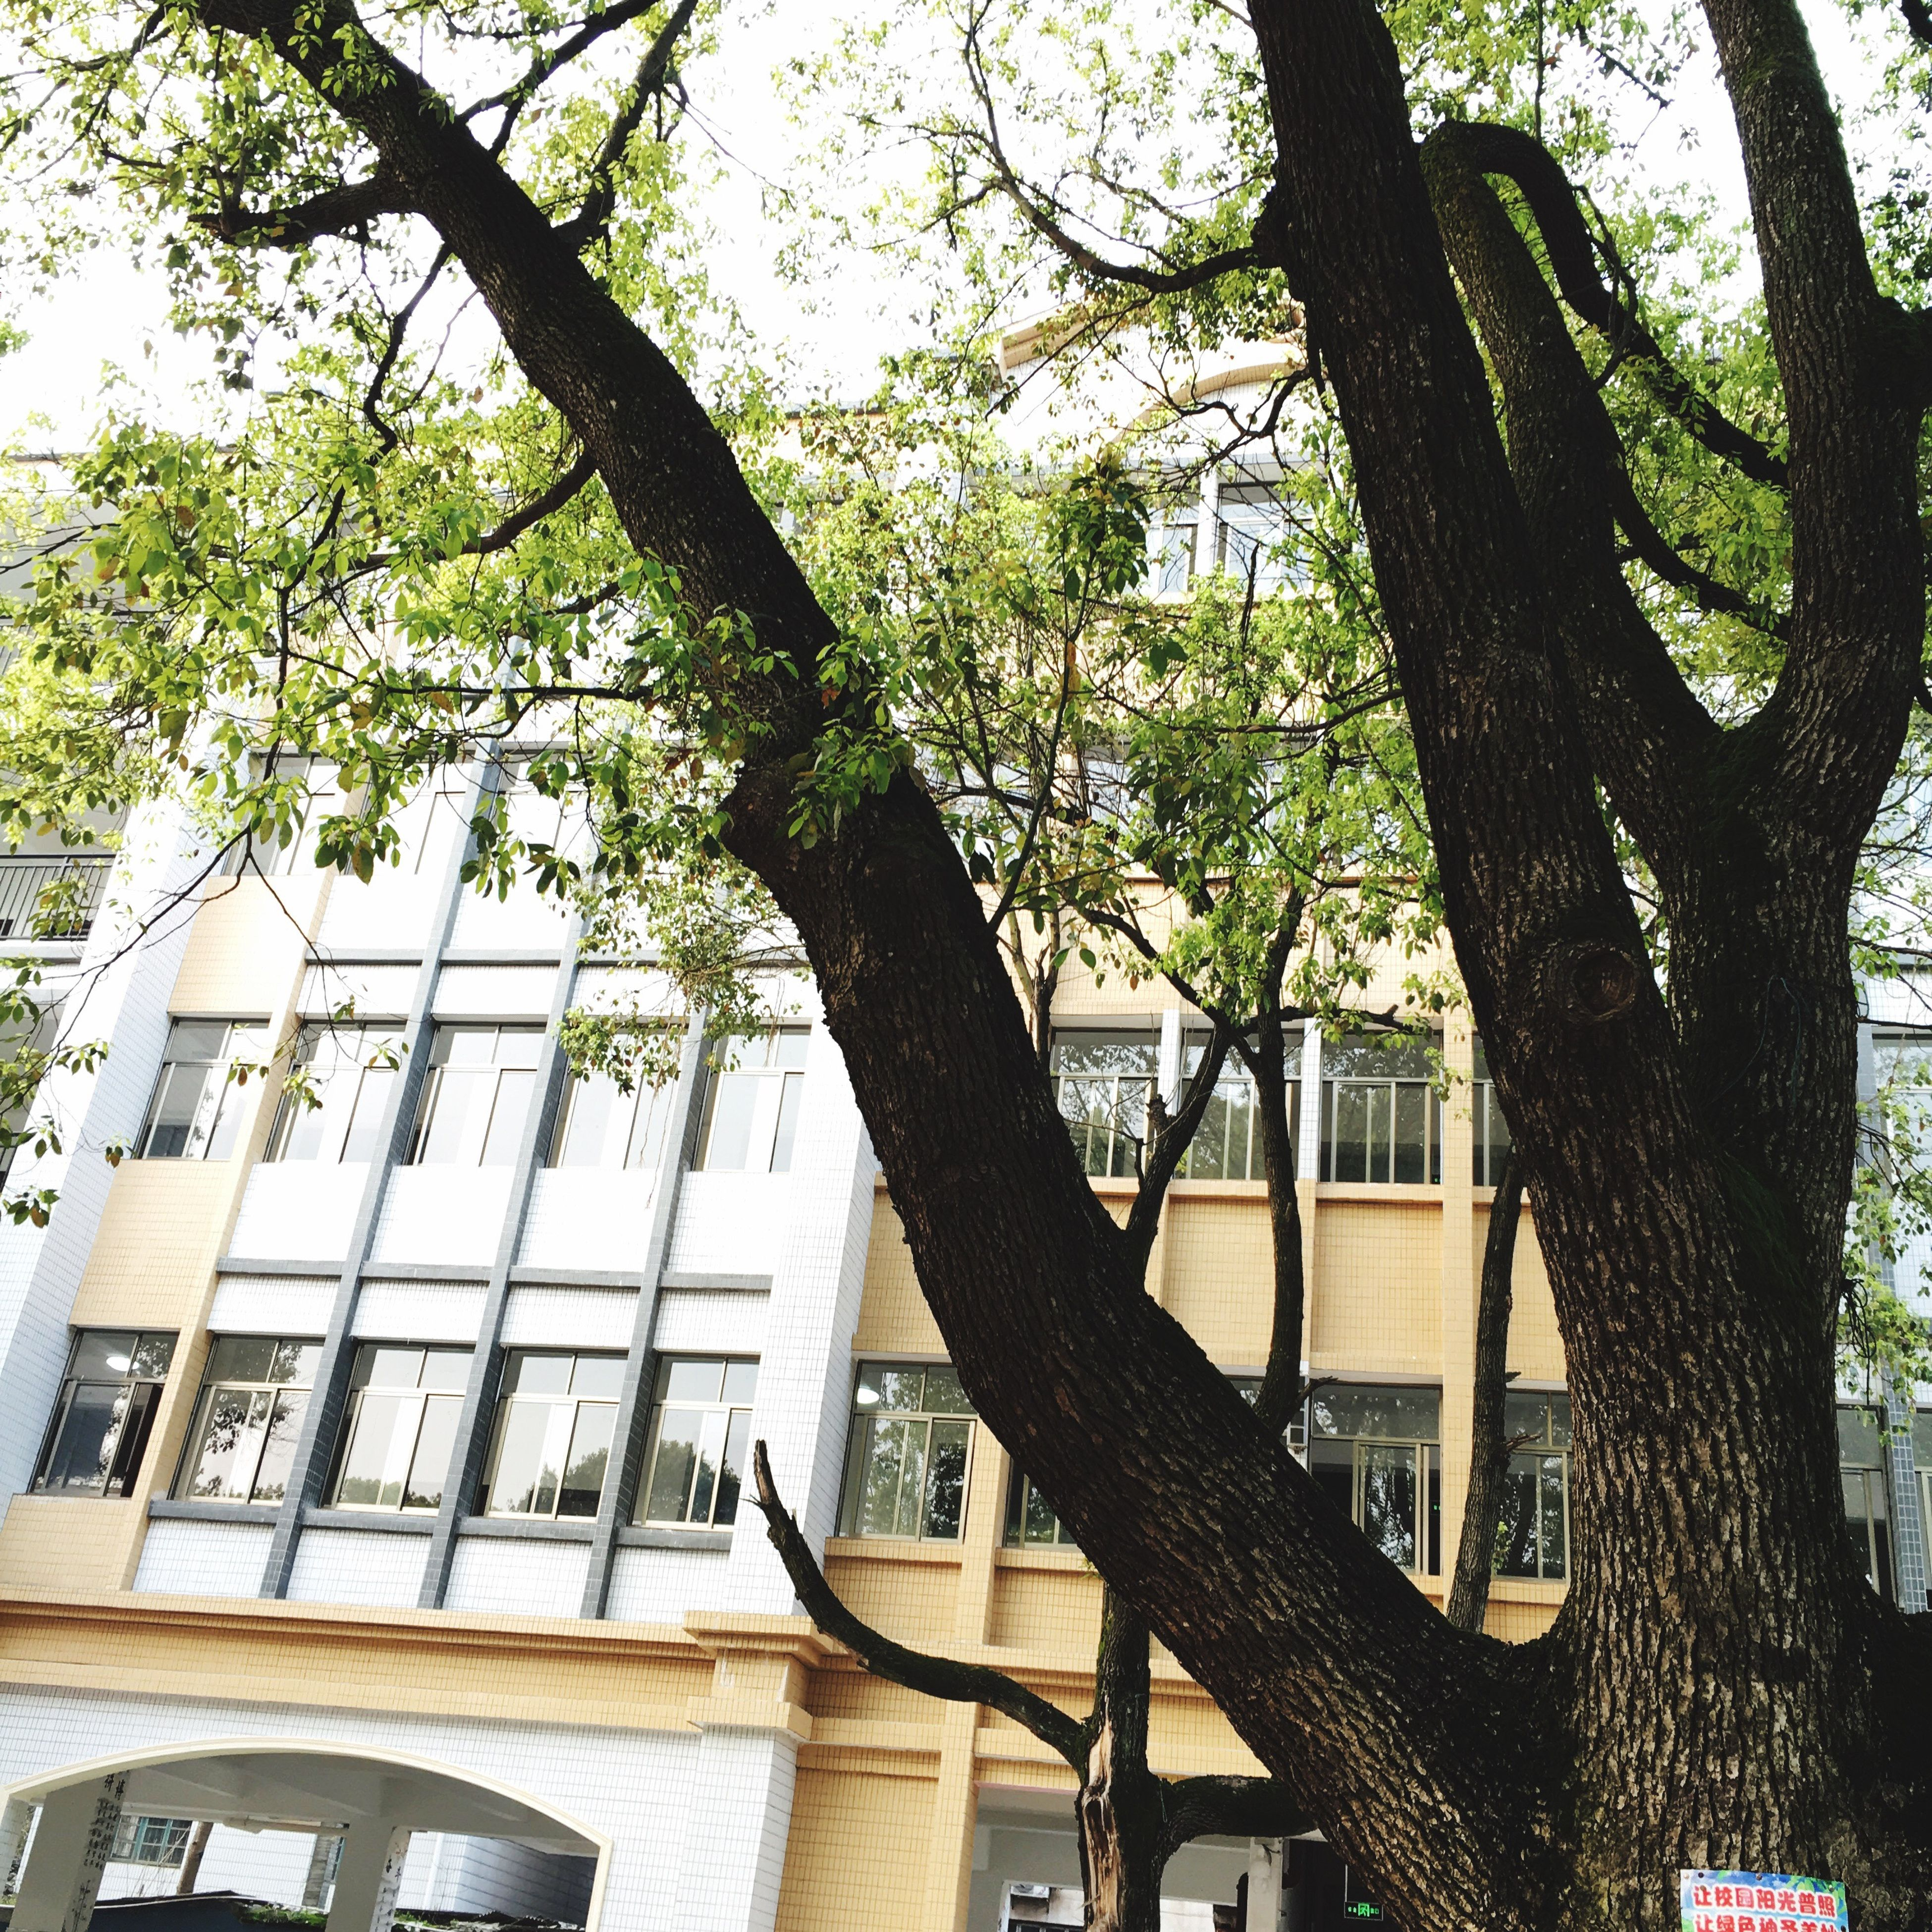 building exterior, architecture, tree, built structure, branch, window, low angle view, residential building, tree trunk, building, residential structure, city, house, growth, day, bare tree, outdoors, sunlight, balcony, no people